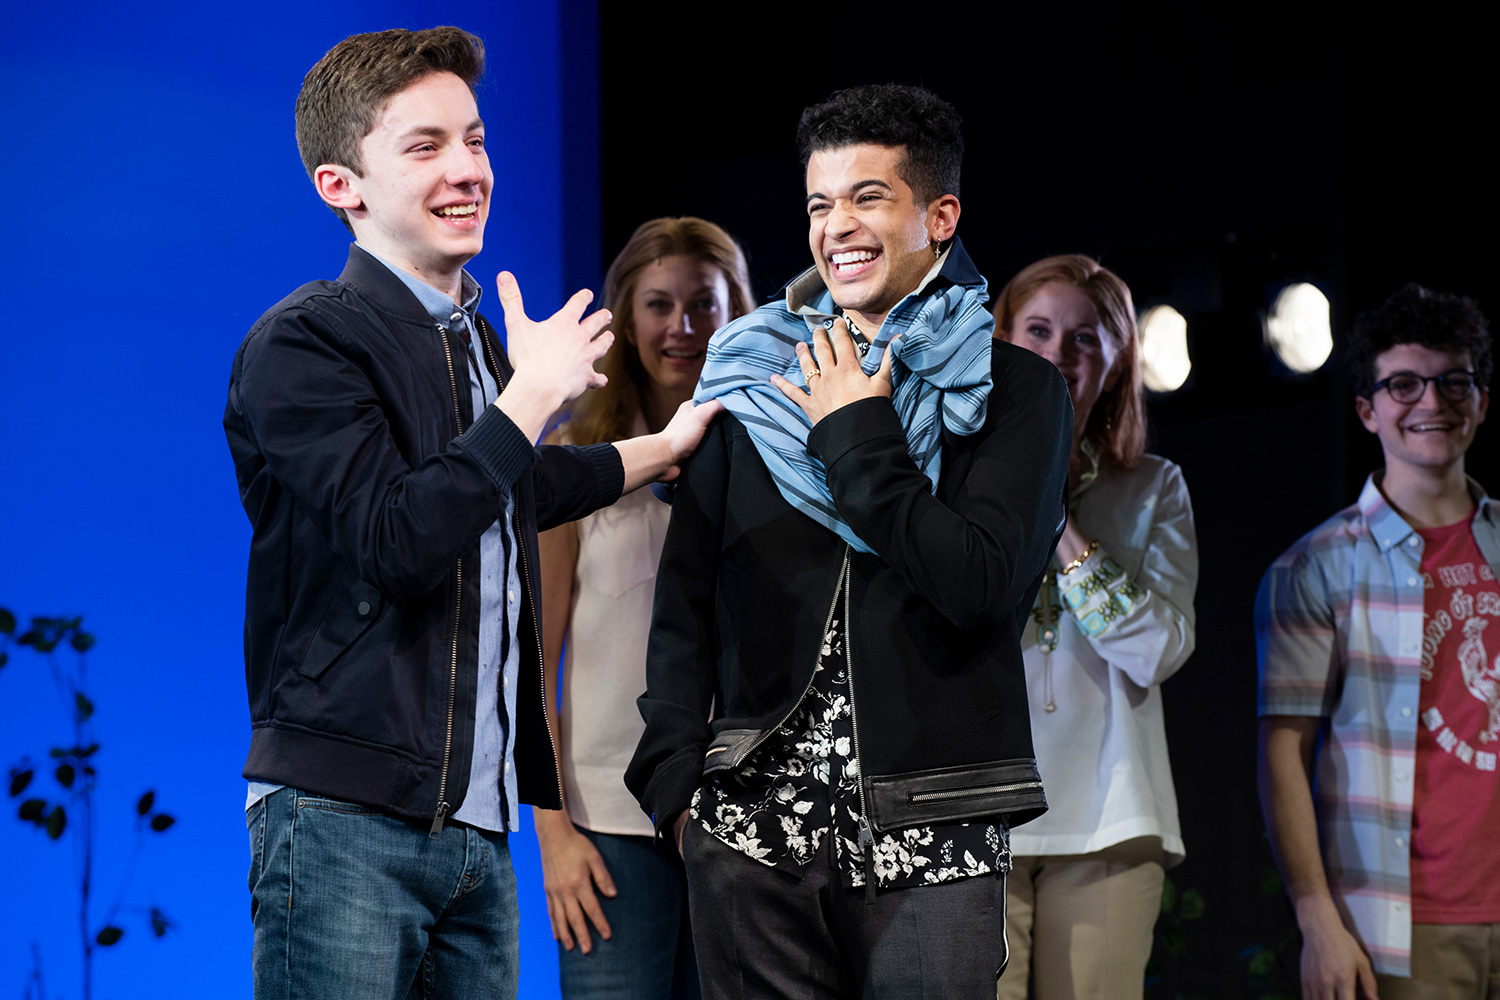 Jimmy Awards winner Andrew Barth Feldman takes final curtain call at Broadway's Dear Evan Hansen while passing the polo on to Dancing with the Stars winner Jordan Fisher, who will assume the role starting Tuesday.